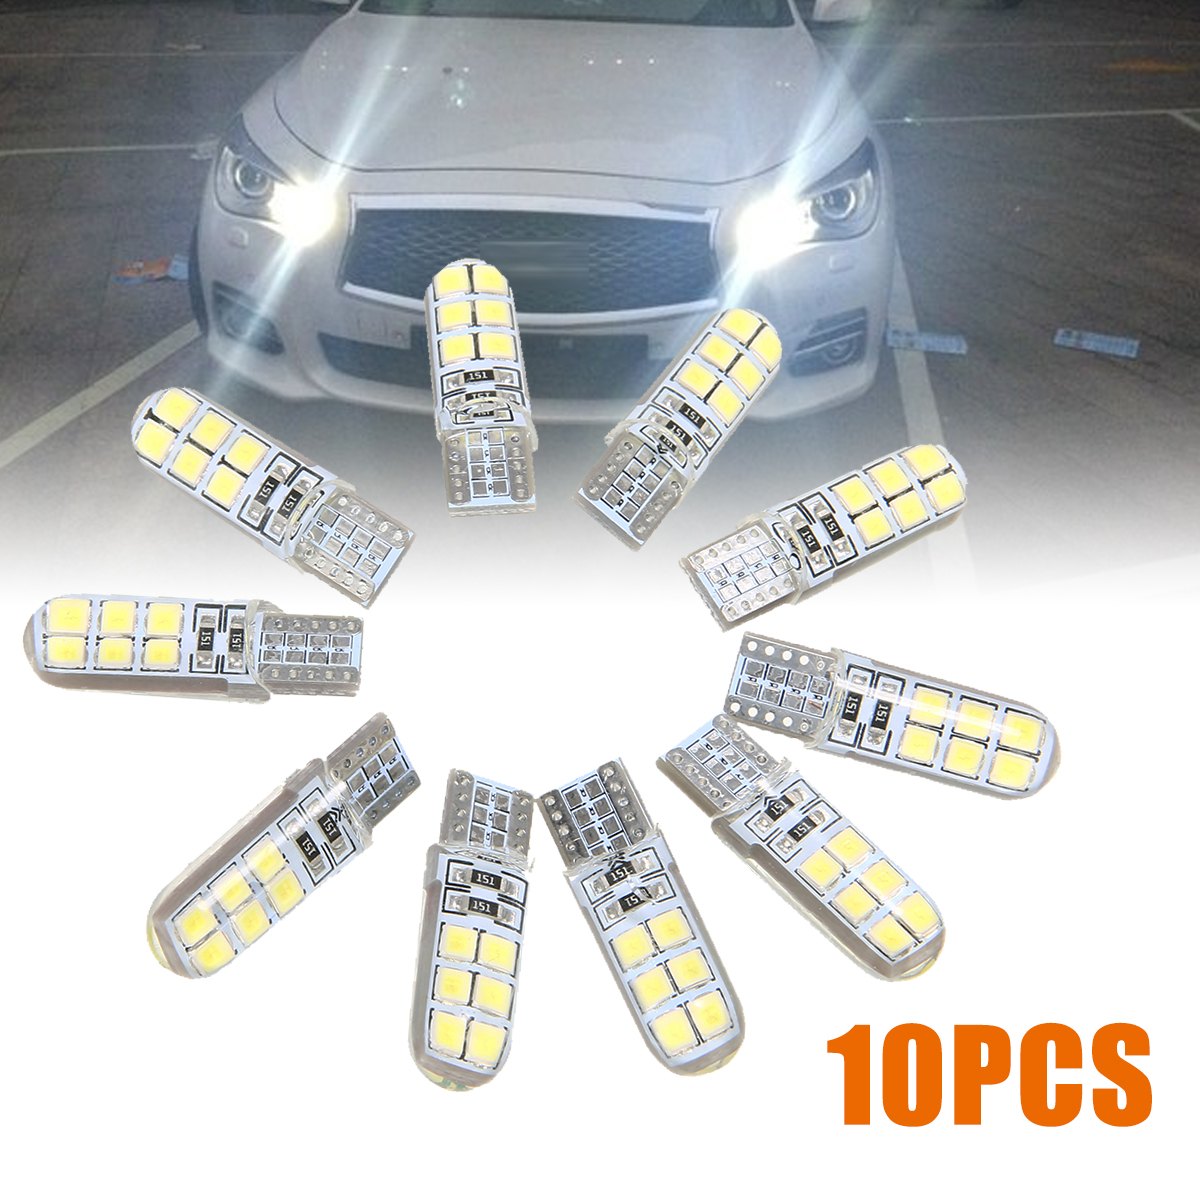 10PCS T10 Led Car Interior Bulb Canbus Error Free T10 White 2835 <font><b>12</b></font> <font><b>SMD</b></font> LED 12V Car Side Wedge Light White Lamp Bulb image